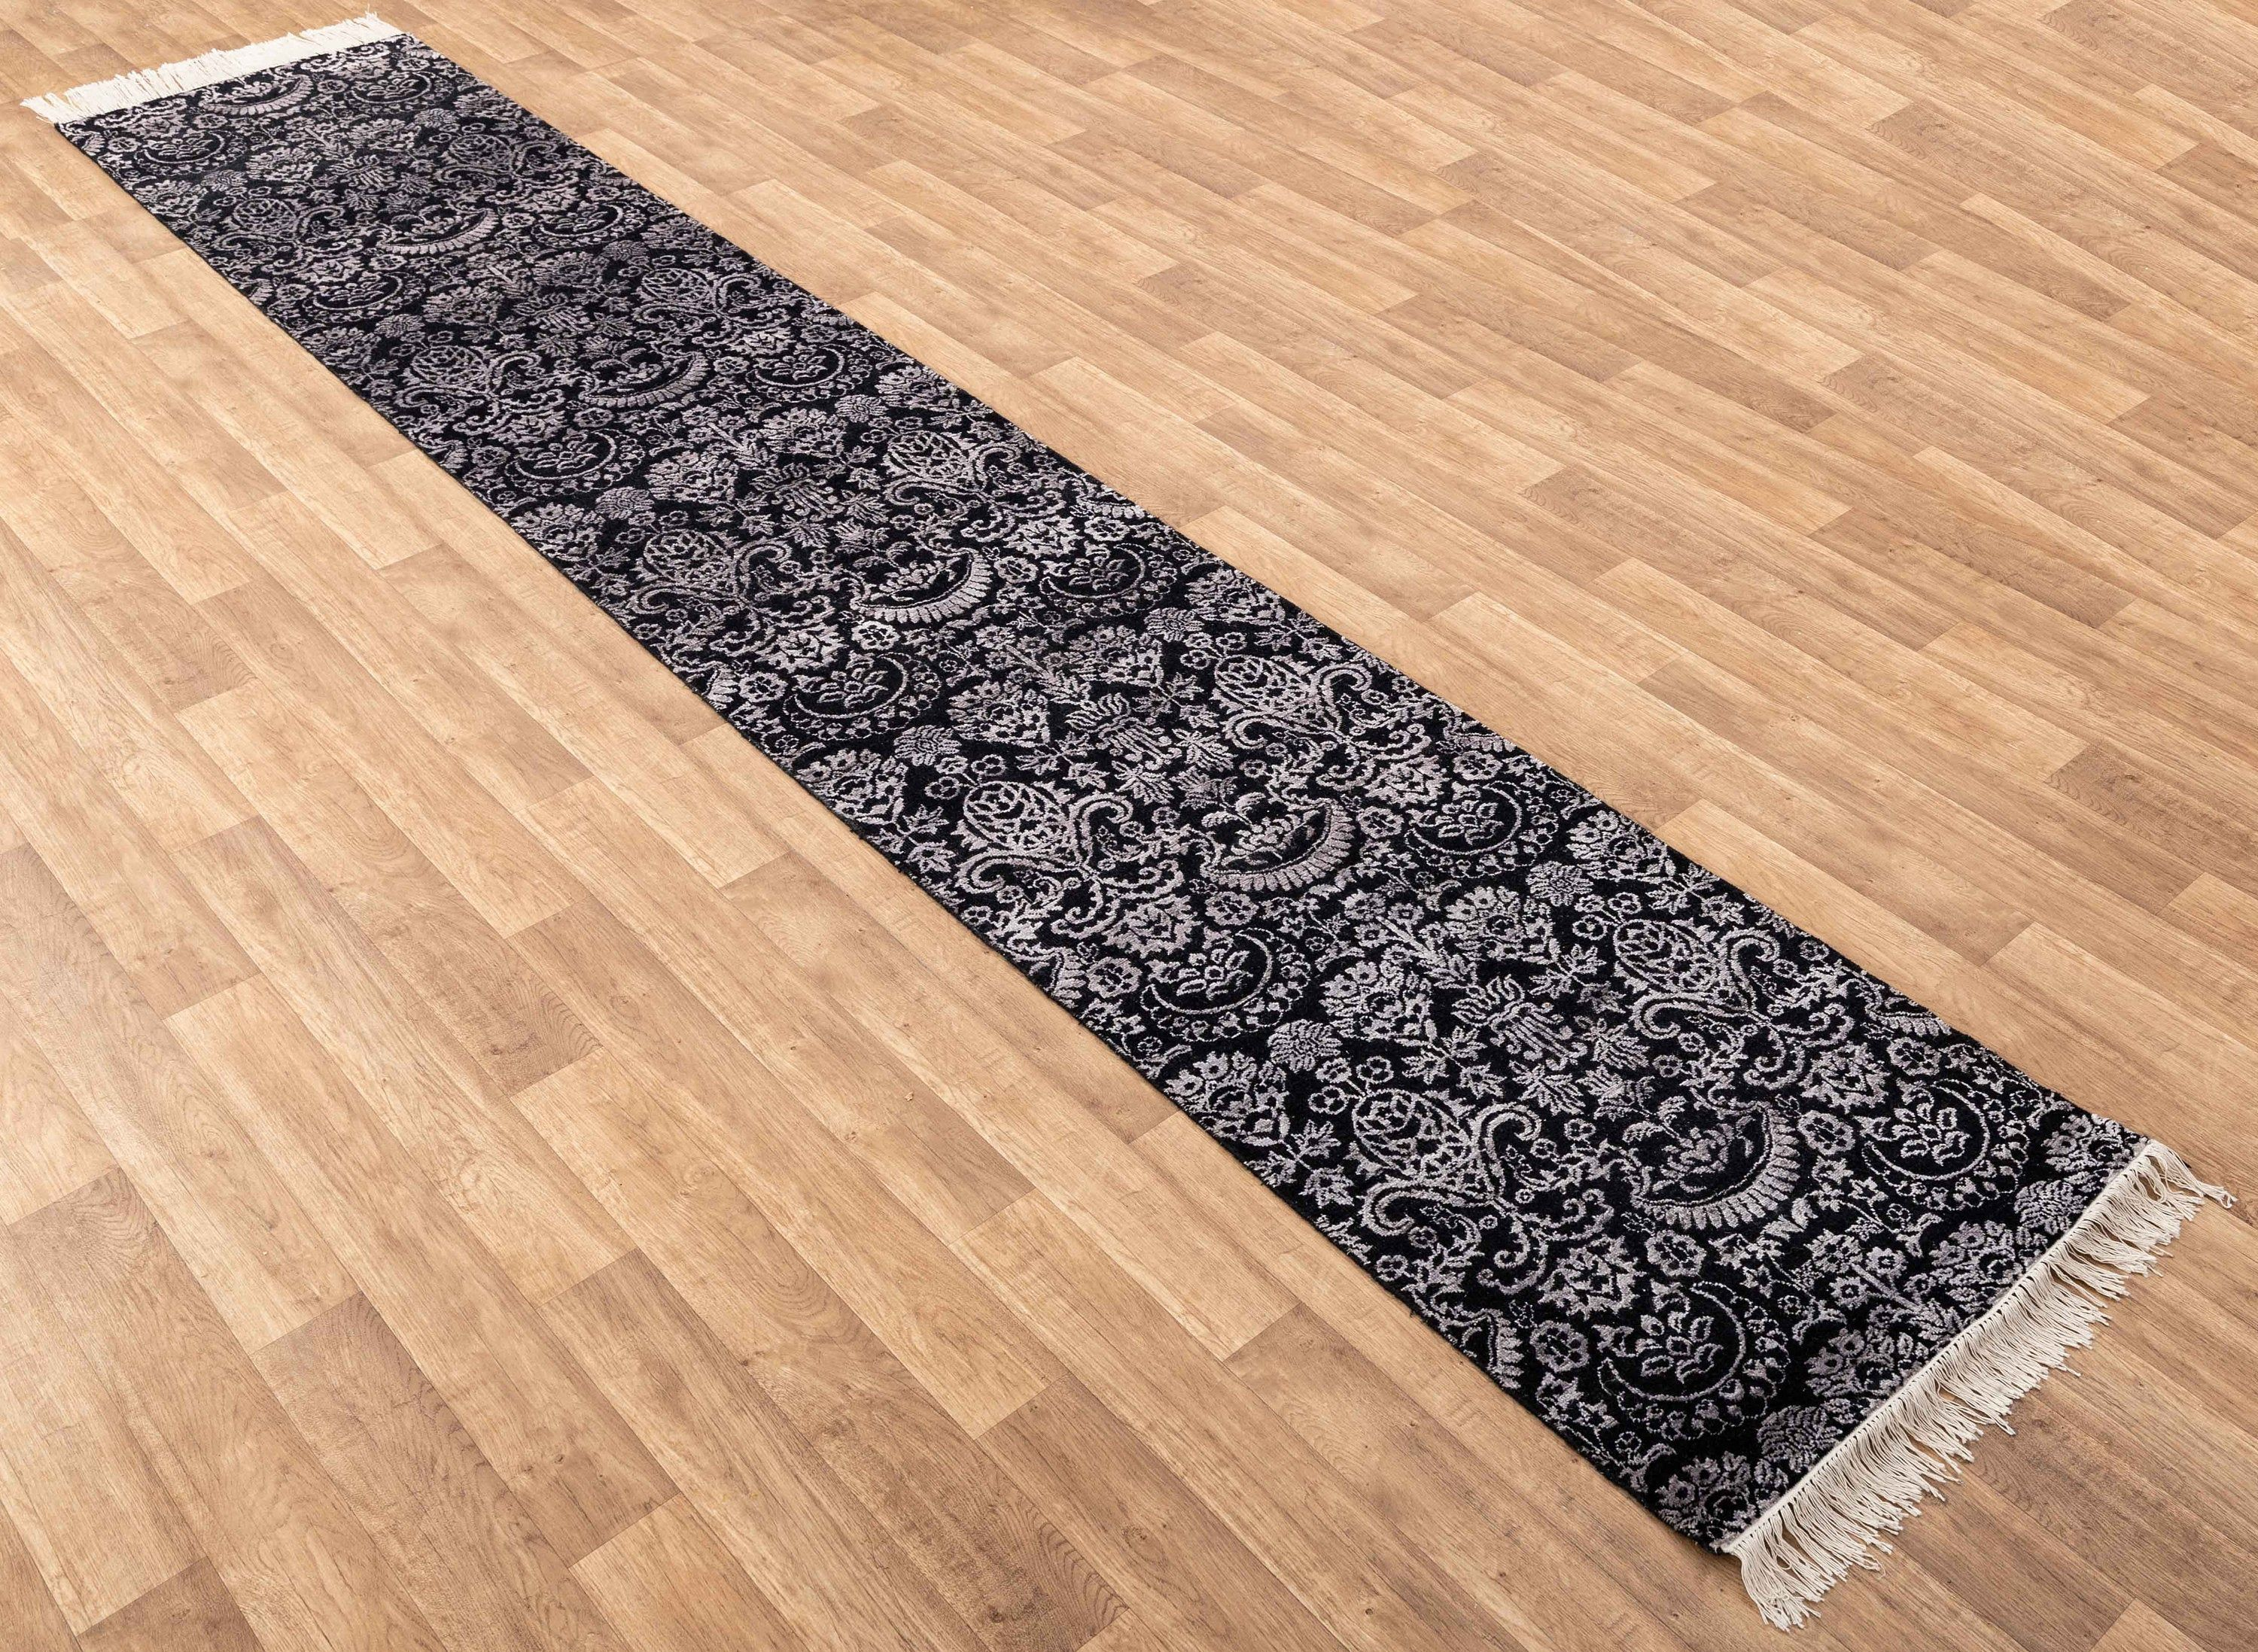 2 7x14 10 Ft Handmade Wool Runner Rug 8040 Etsy In 2020 Wool Runner Rug Rugs Rug Runner